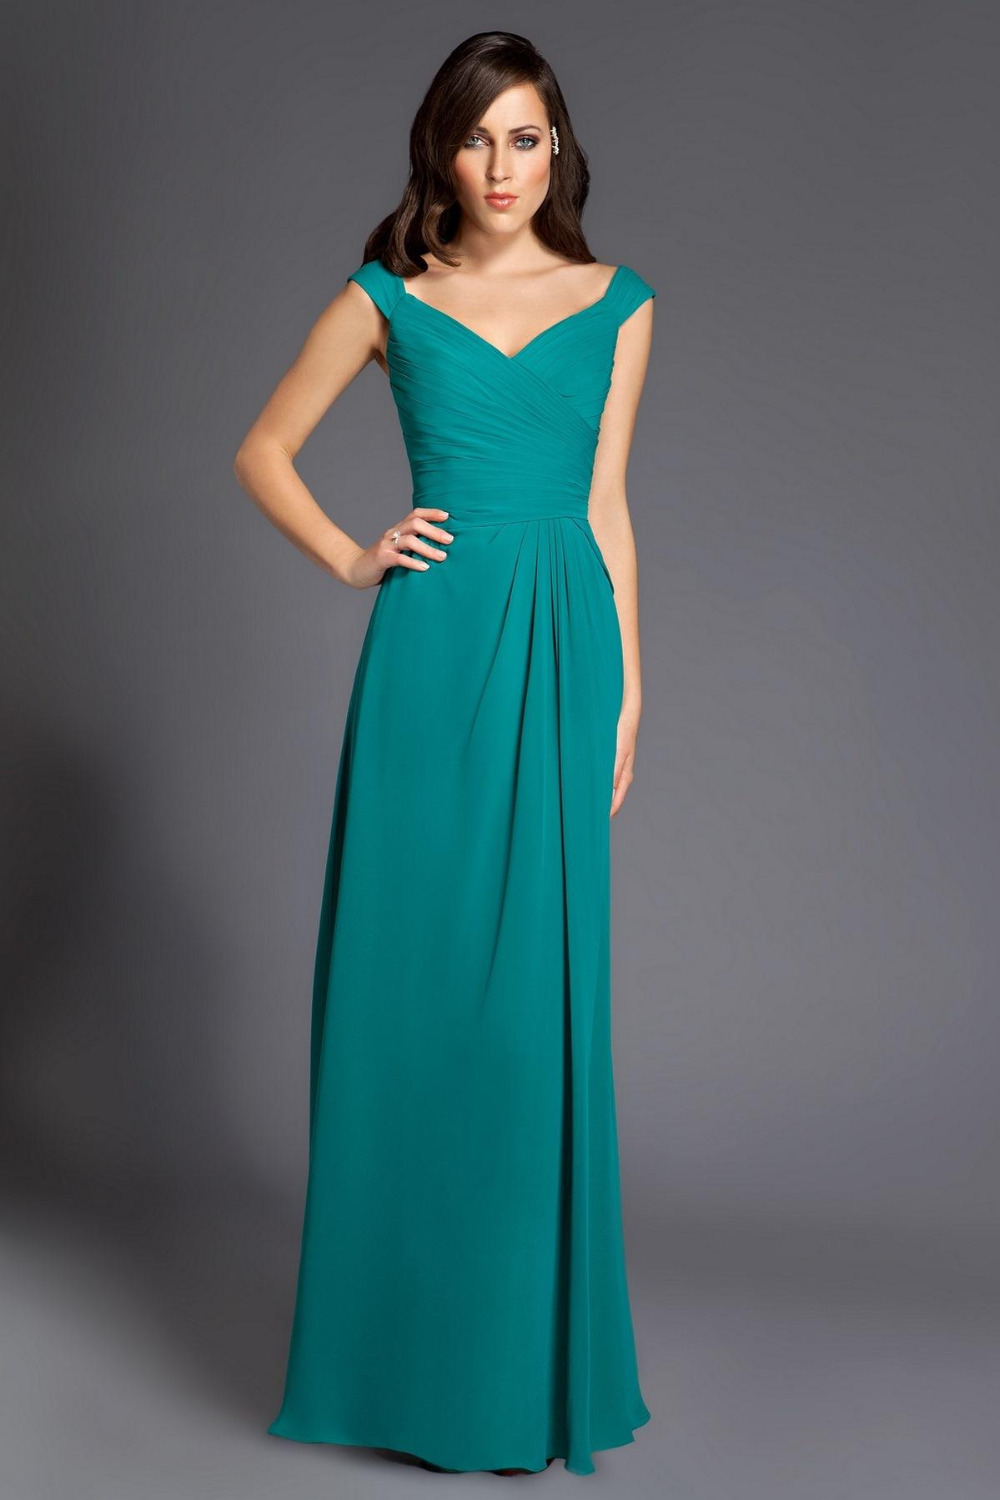 Cheap 2015 Chiffon Hunter Mint Green Bridesmaid Dresses Floor Length ...